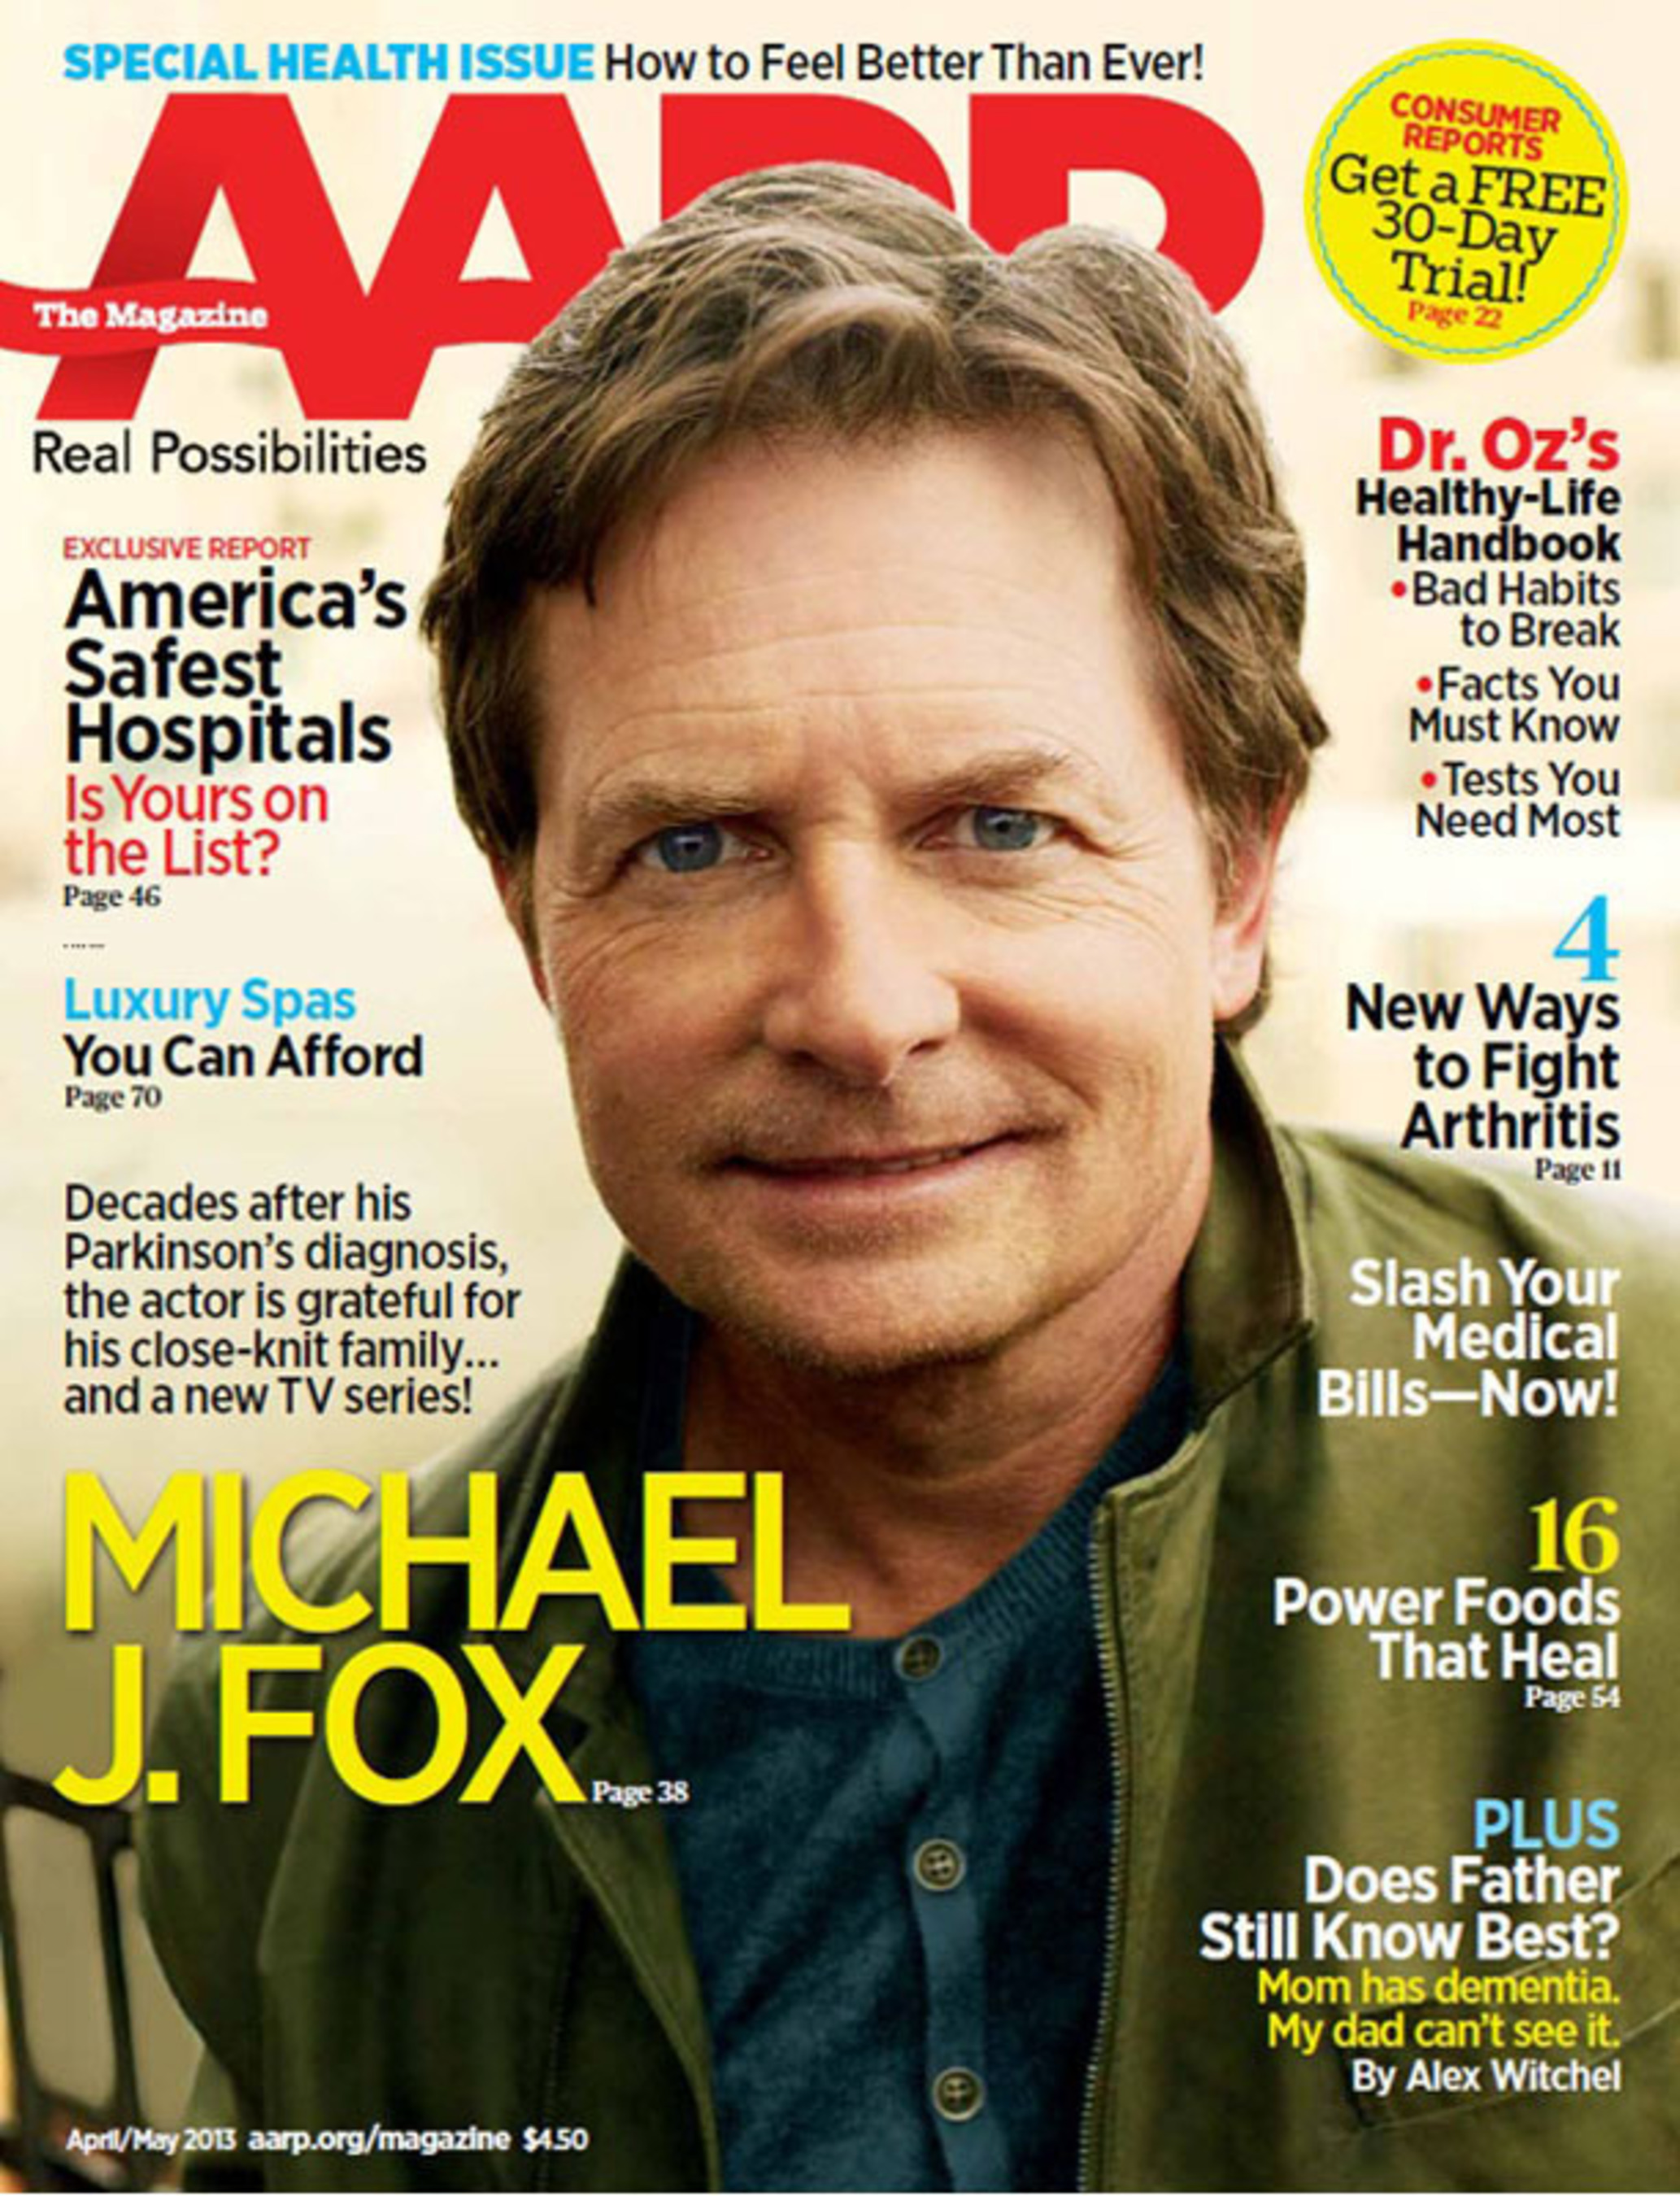 Beloved Entertainer Michael J. Fox Speaks Candidly About His Health, Career and Family in the April/May Issue of AARP The Magazine.  (PRNewsFoto/AARP)